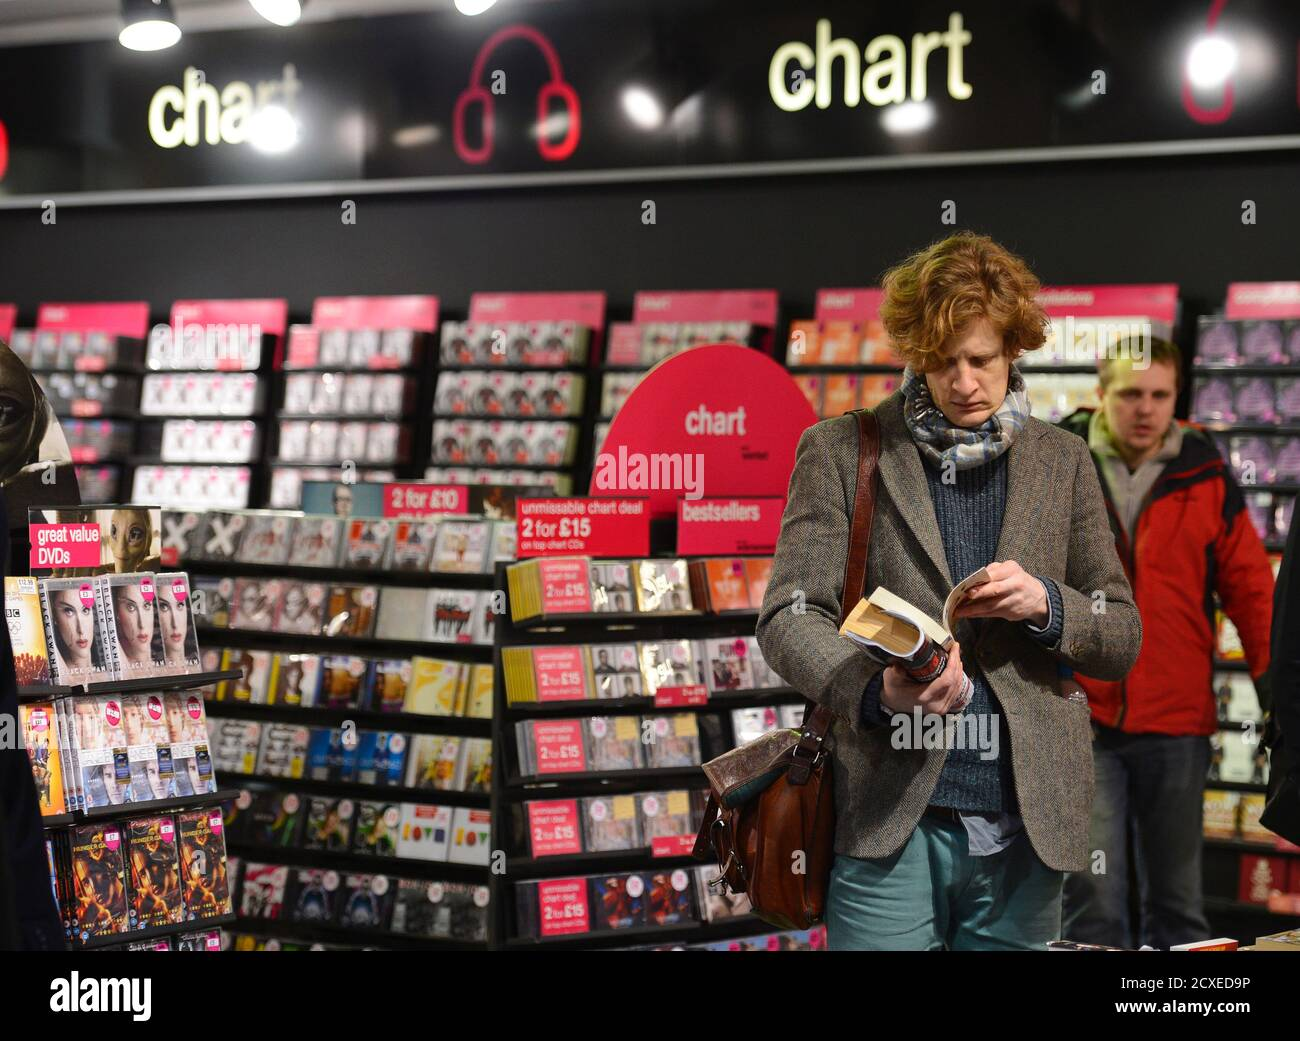 A customer looks at a book in an HMV shop in central London, January 15, 2013. HMV, the 92-year-old British music retailer seeking protection from creditors, is unlikely to have much of a future beyond a rump of stores and the internet, if other recent retail failures are any guide.    REUTERS/Paul Hackett (BRITAIN - Tags: BUSINESS MEDIA ENTERTAINMENT) Stock Photo